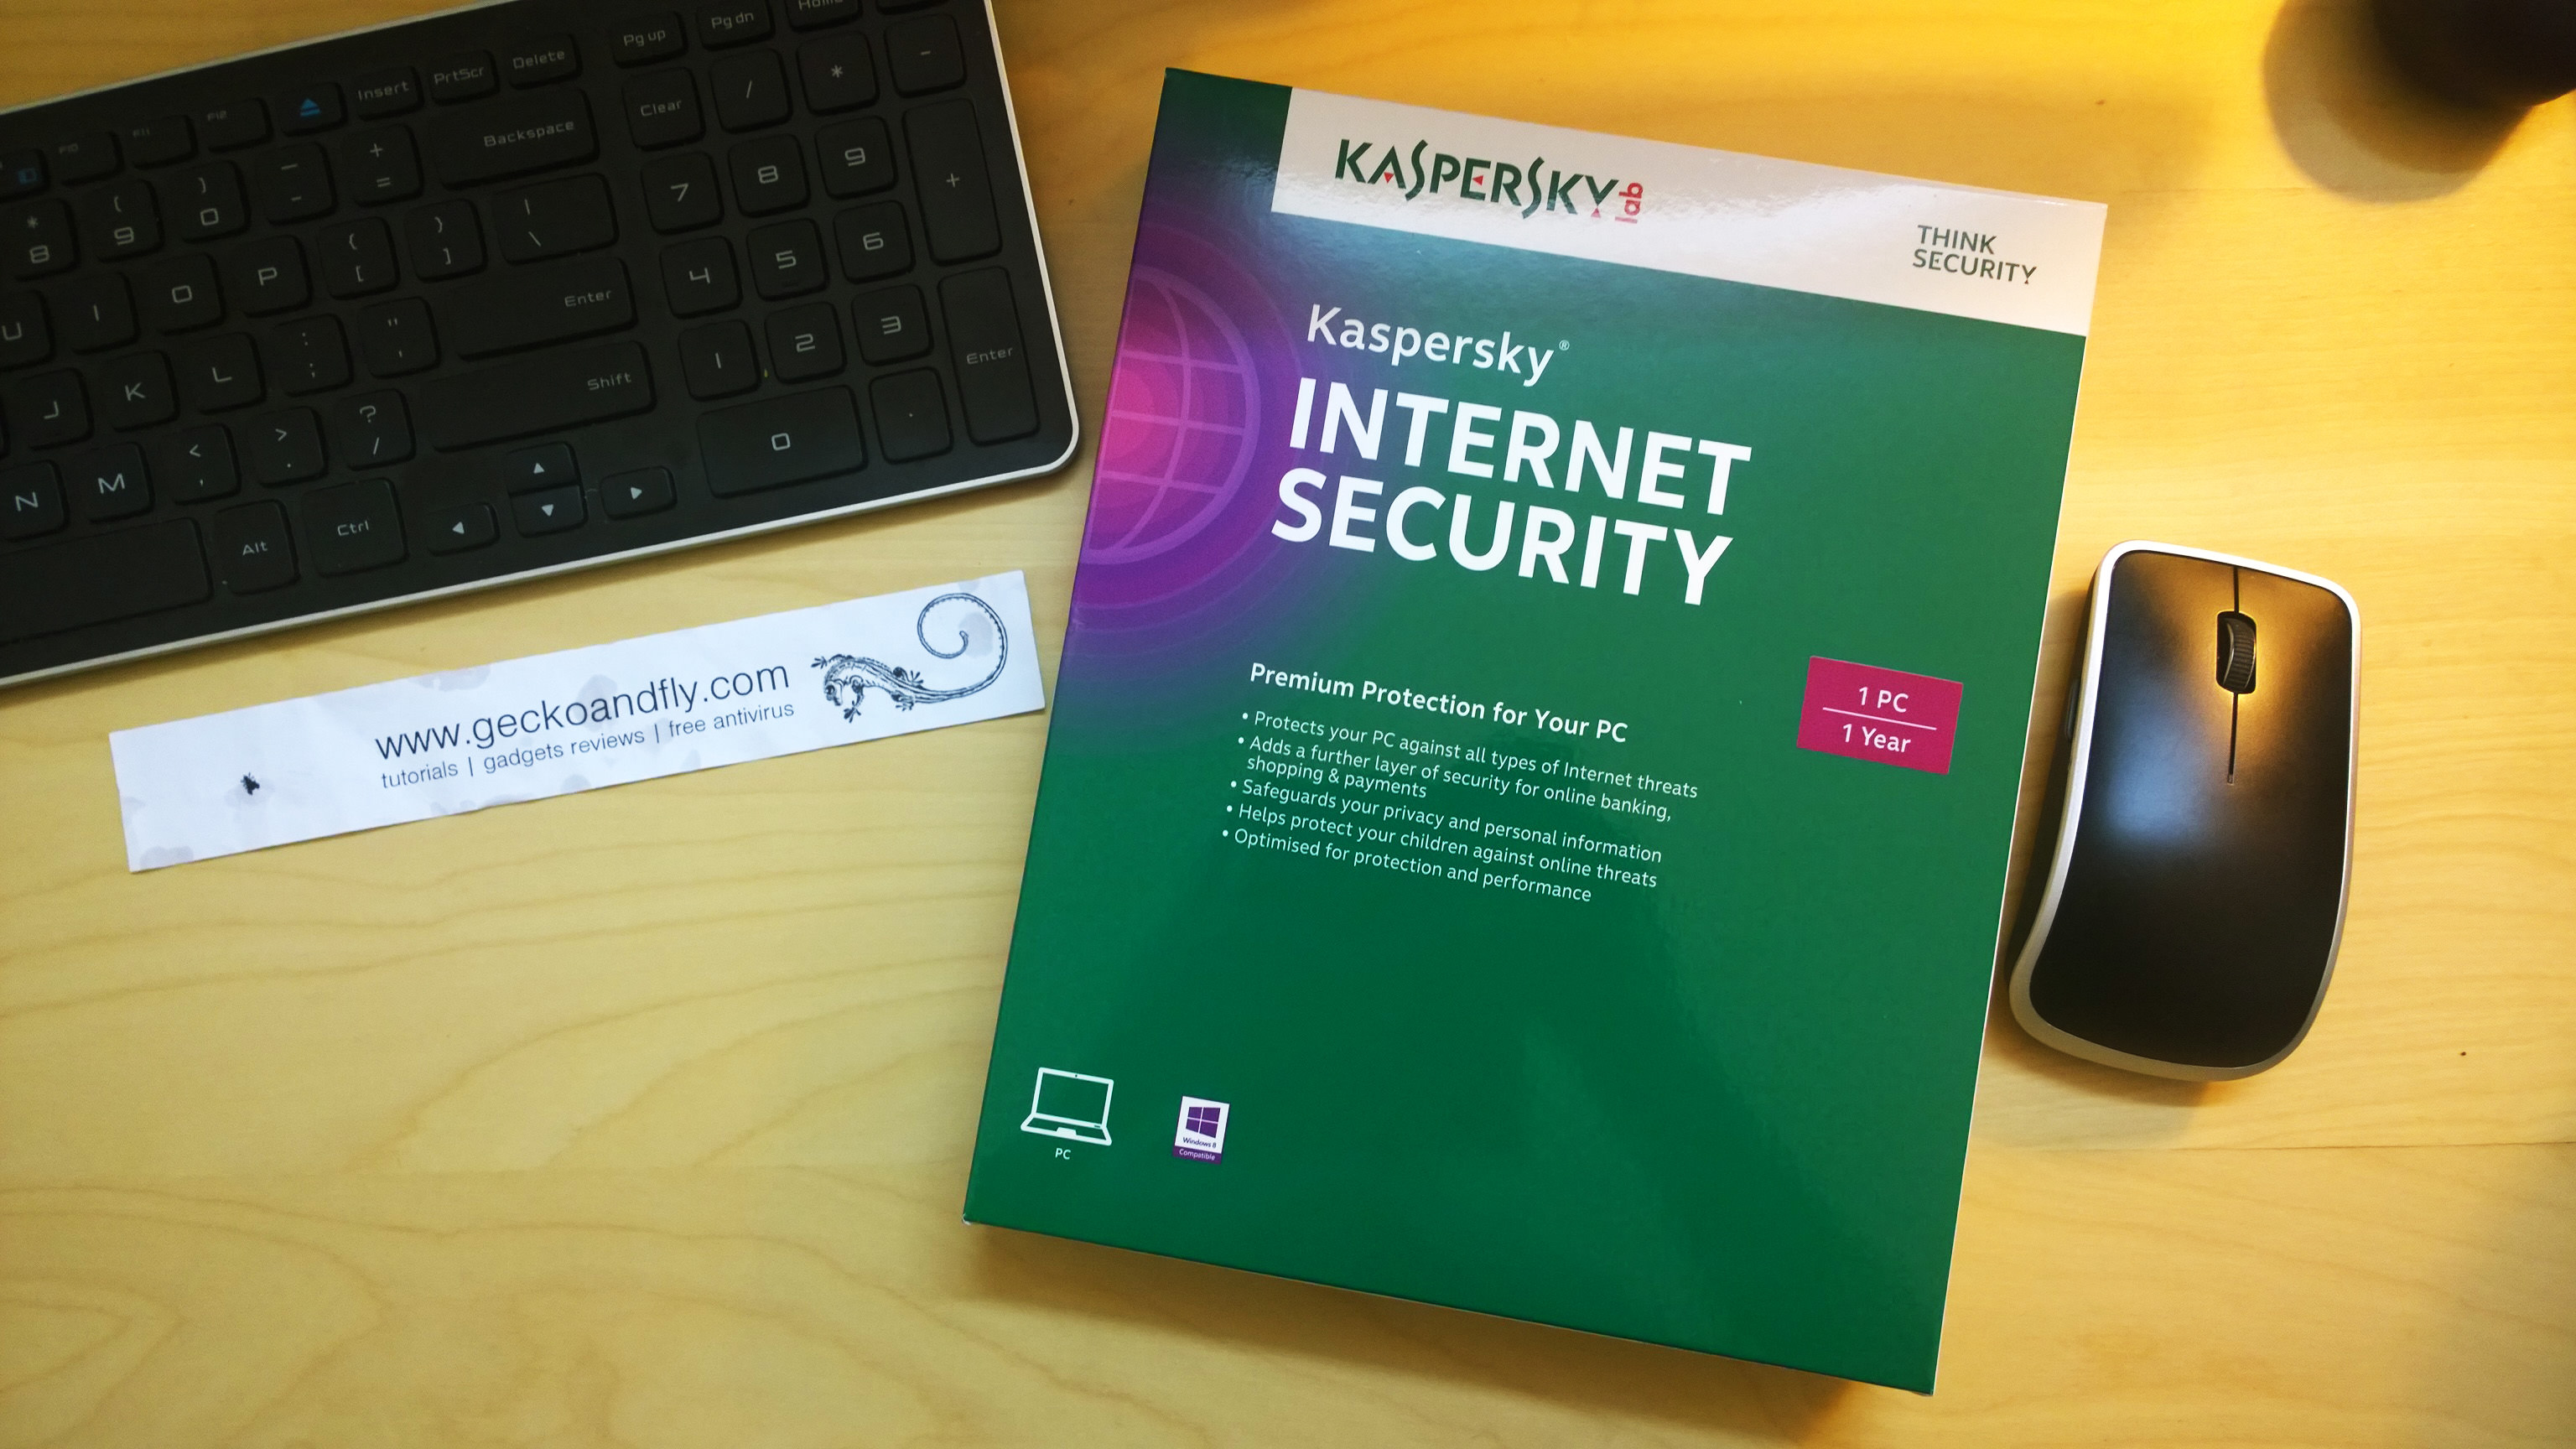 Xp 2016 Crack Kaspersky Internet Security